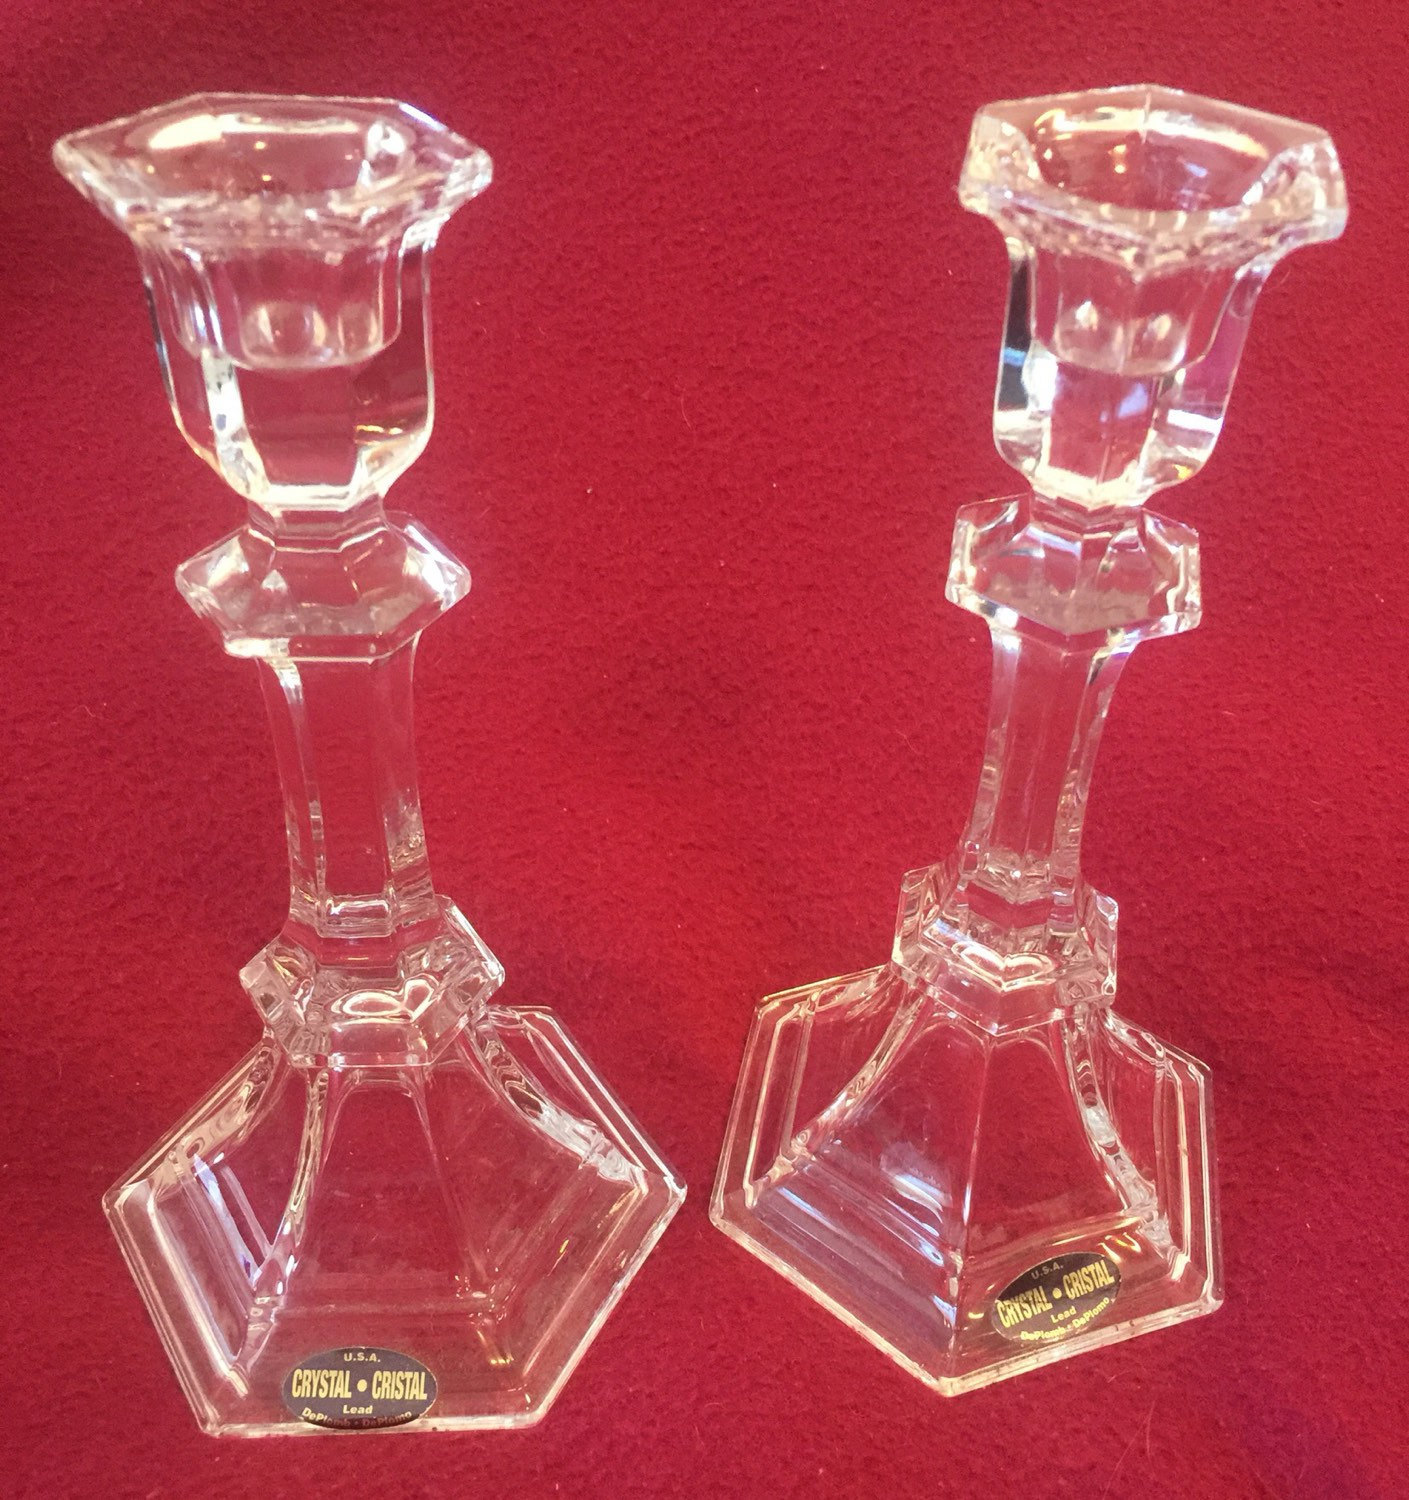 Primary image for Crystal Cristal Candlestick Pair by Deplomb Deplomo Italy 1980s